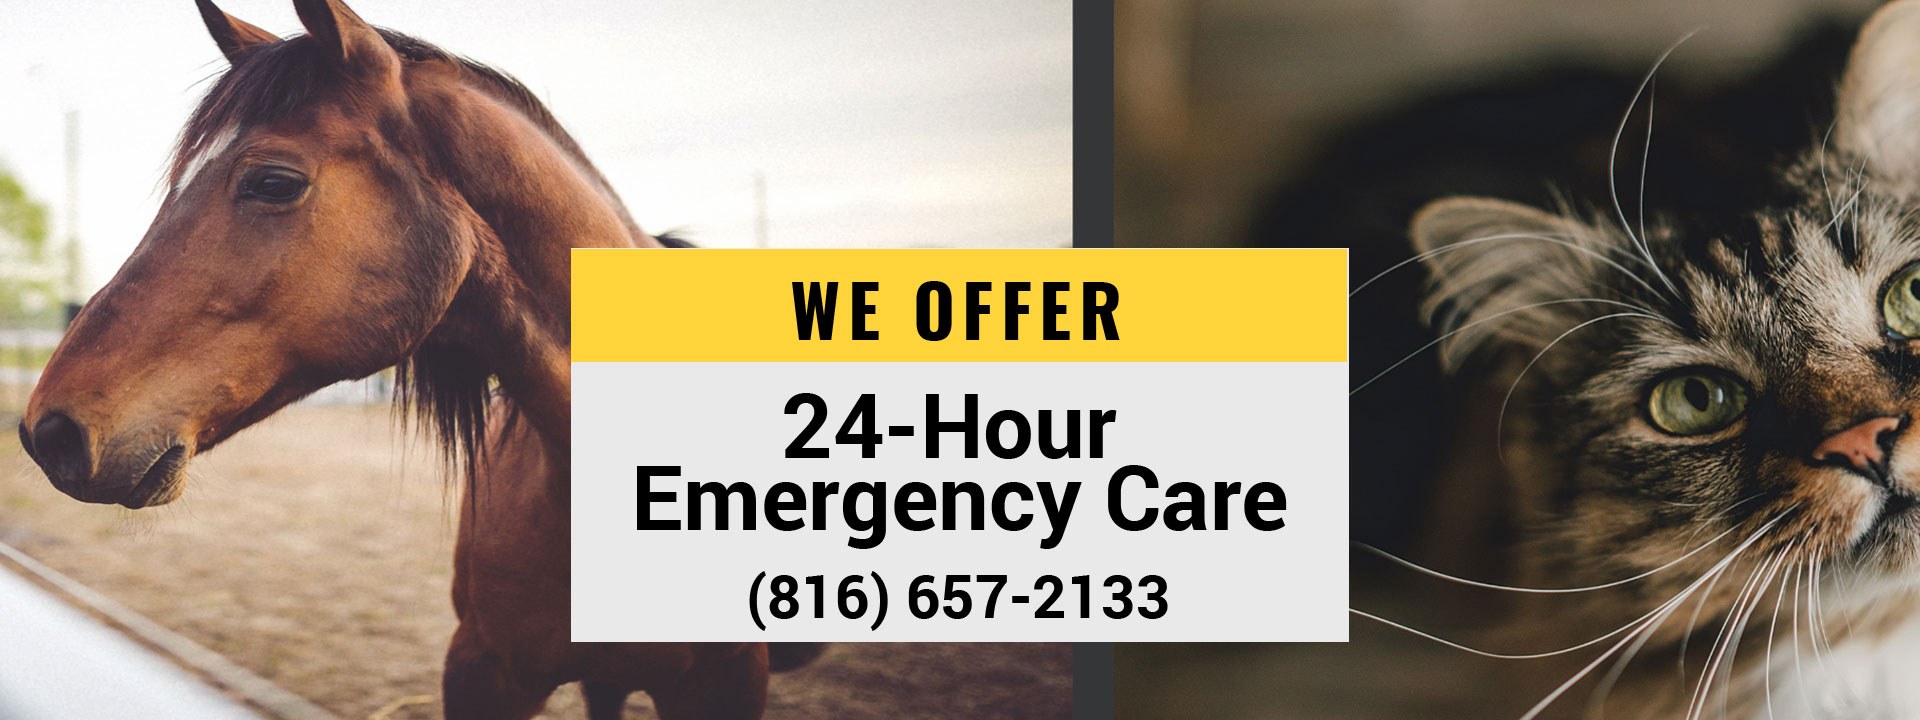 We offer 24-hour emergency care for your pets (816) 657-2133